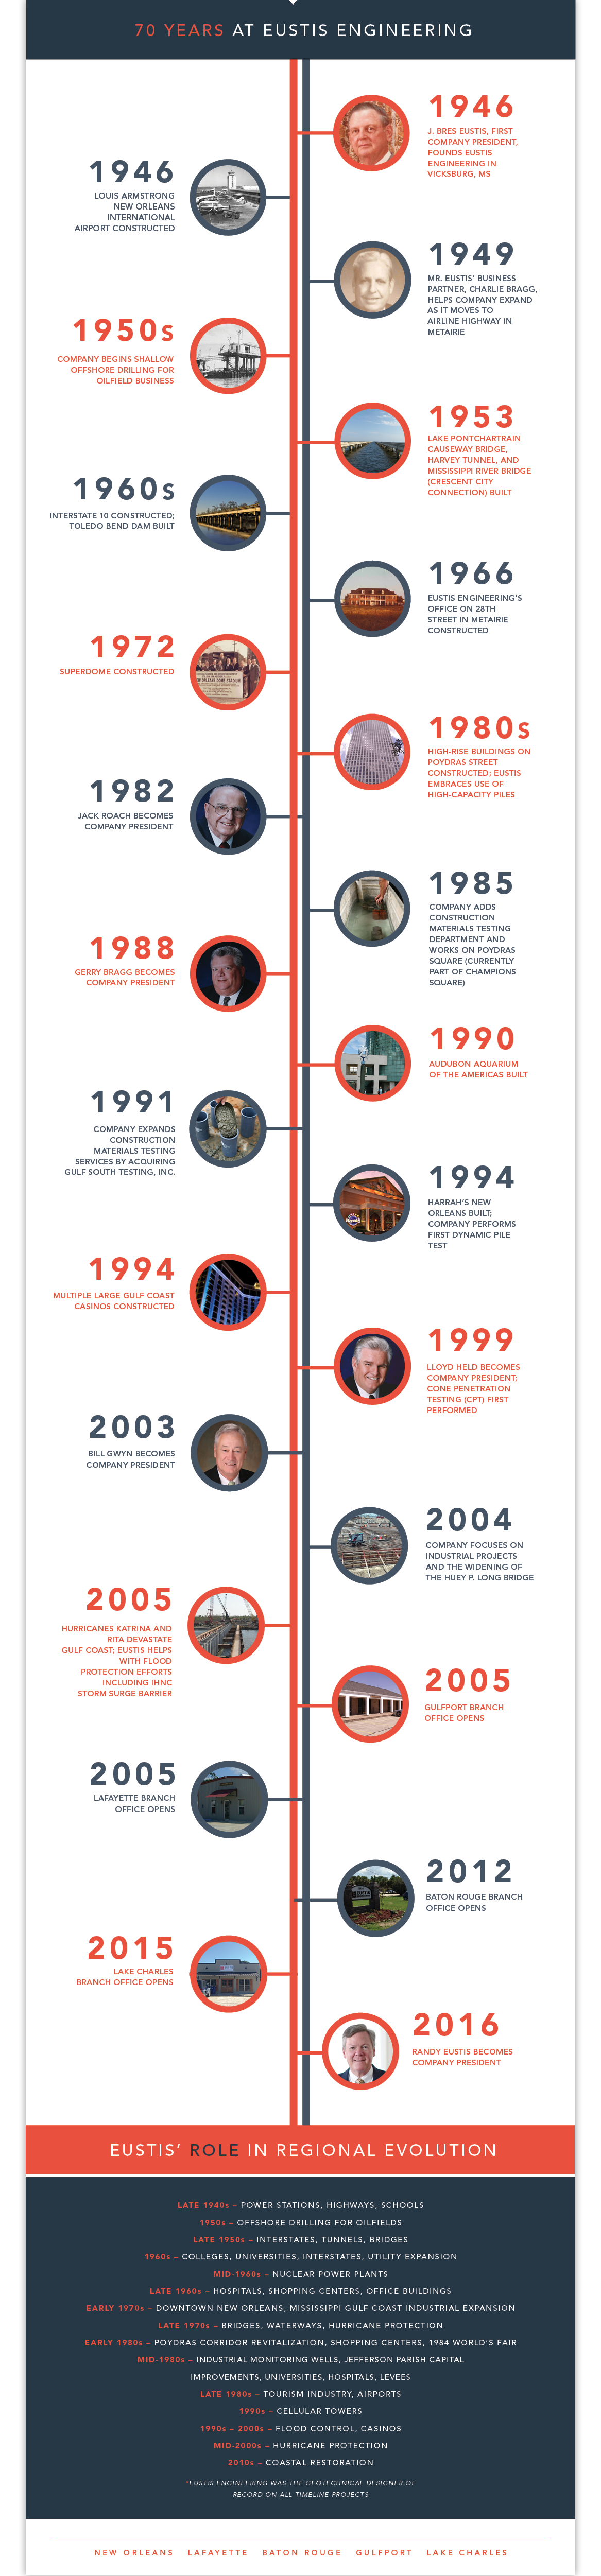 Timeline, Eustis Engineering